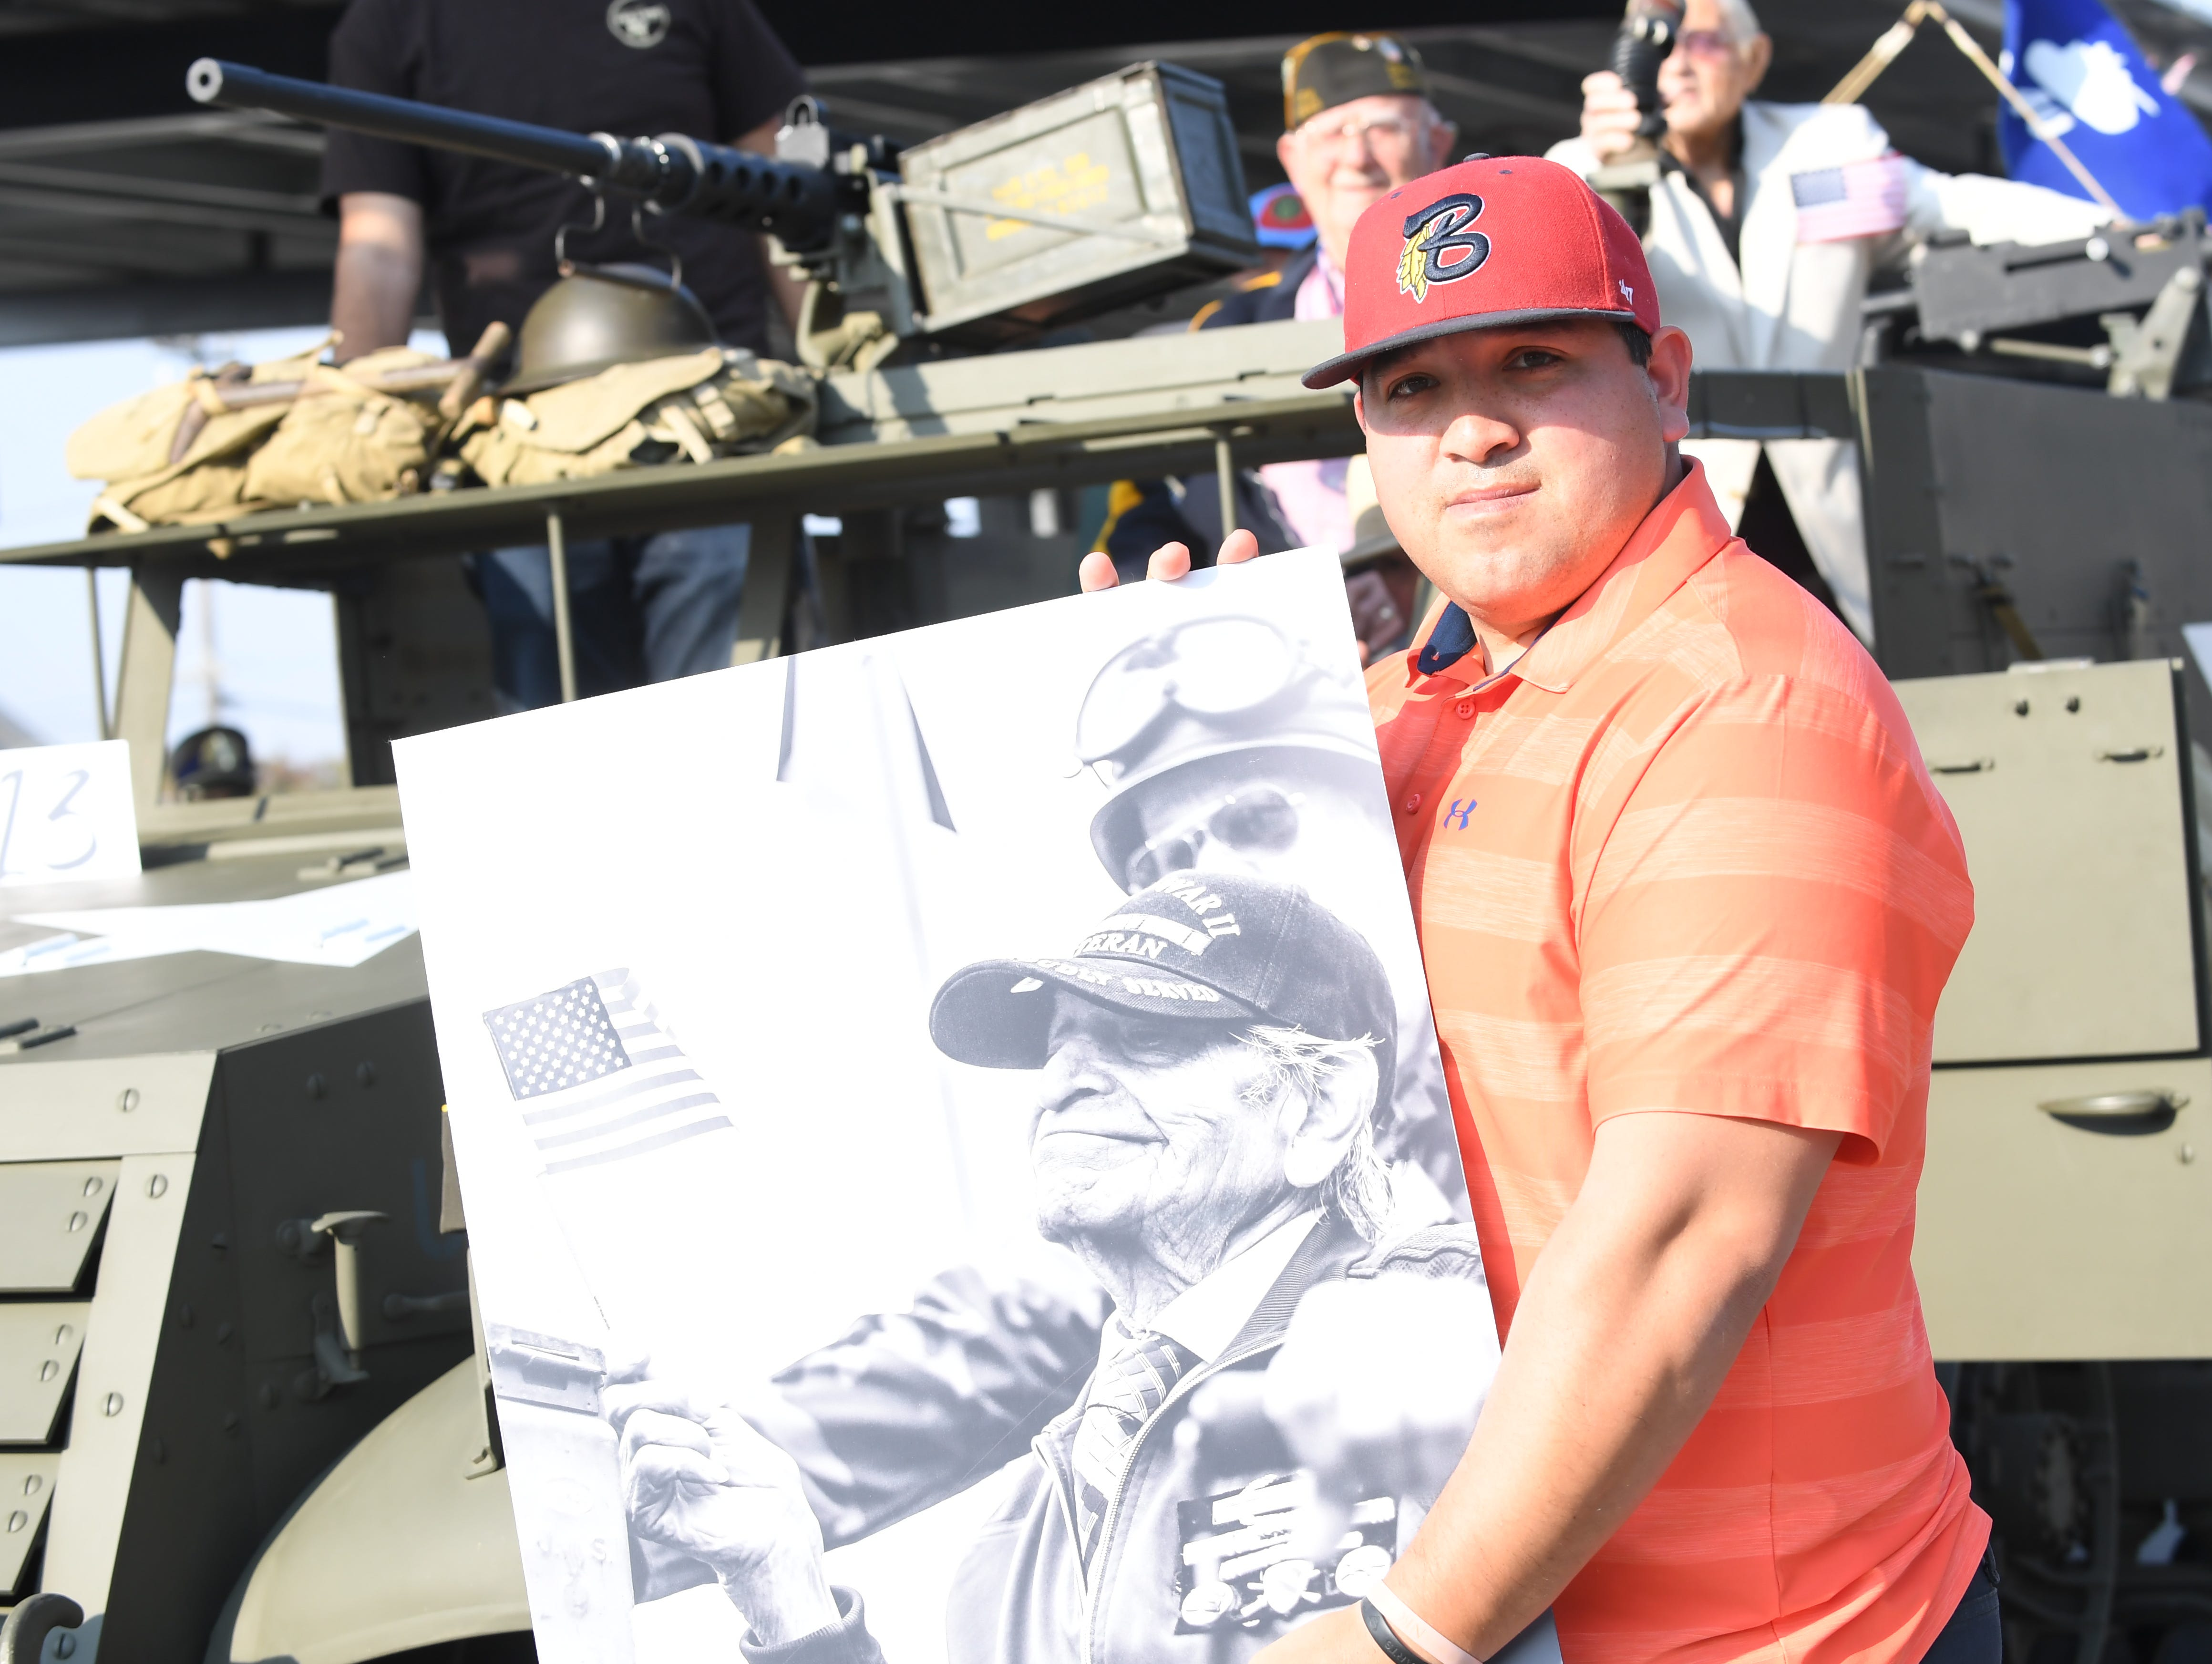 Efran Ruiz of Salinas holds a picture of his late grandfather, Juan G. Mejia, a World War II Army veteran, during Sunday's Monterey County Veterans Day Parade.